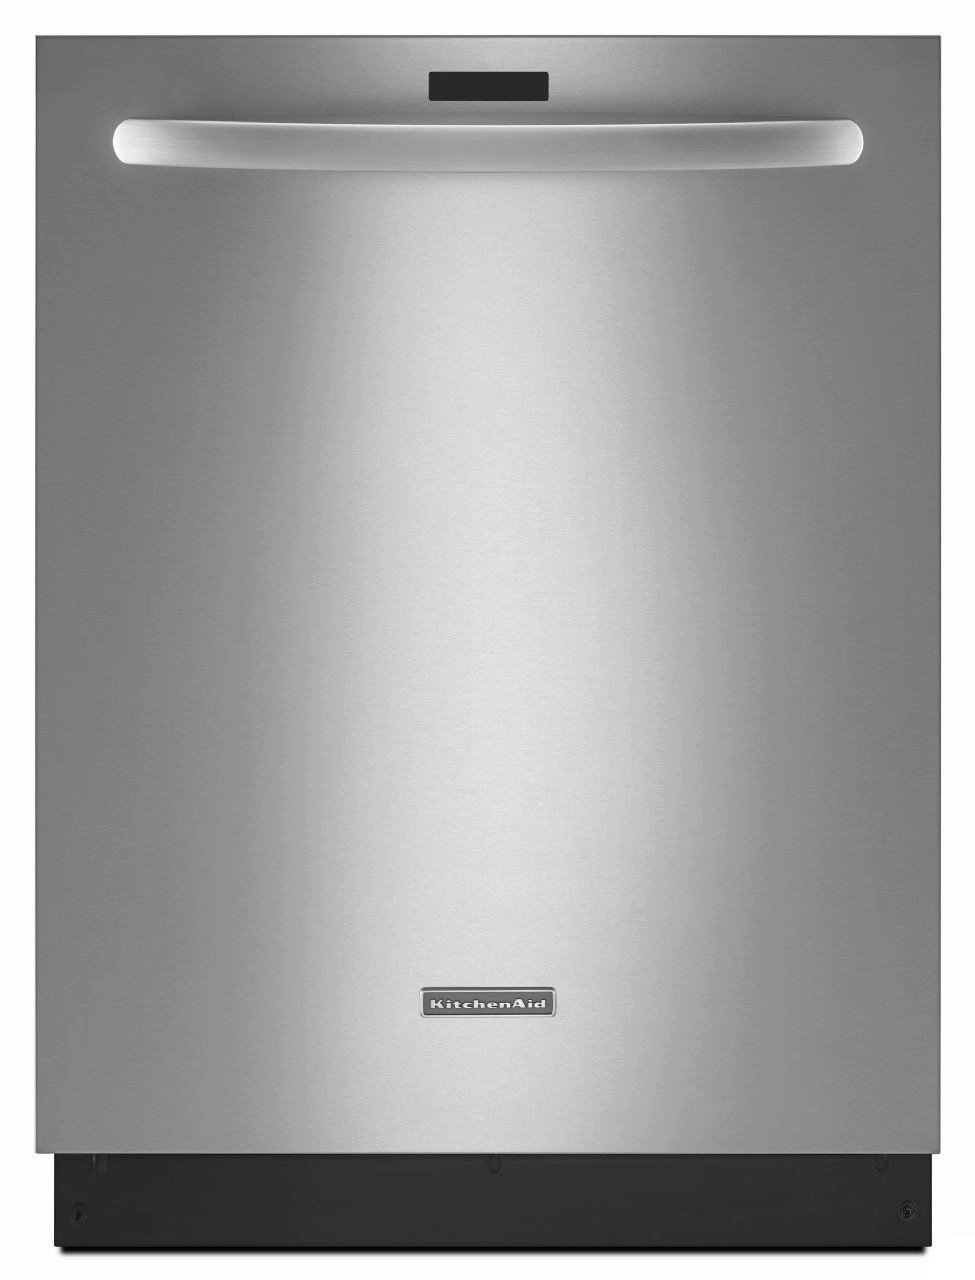 KitchenAid KDTM354DSS Dishwasher